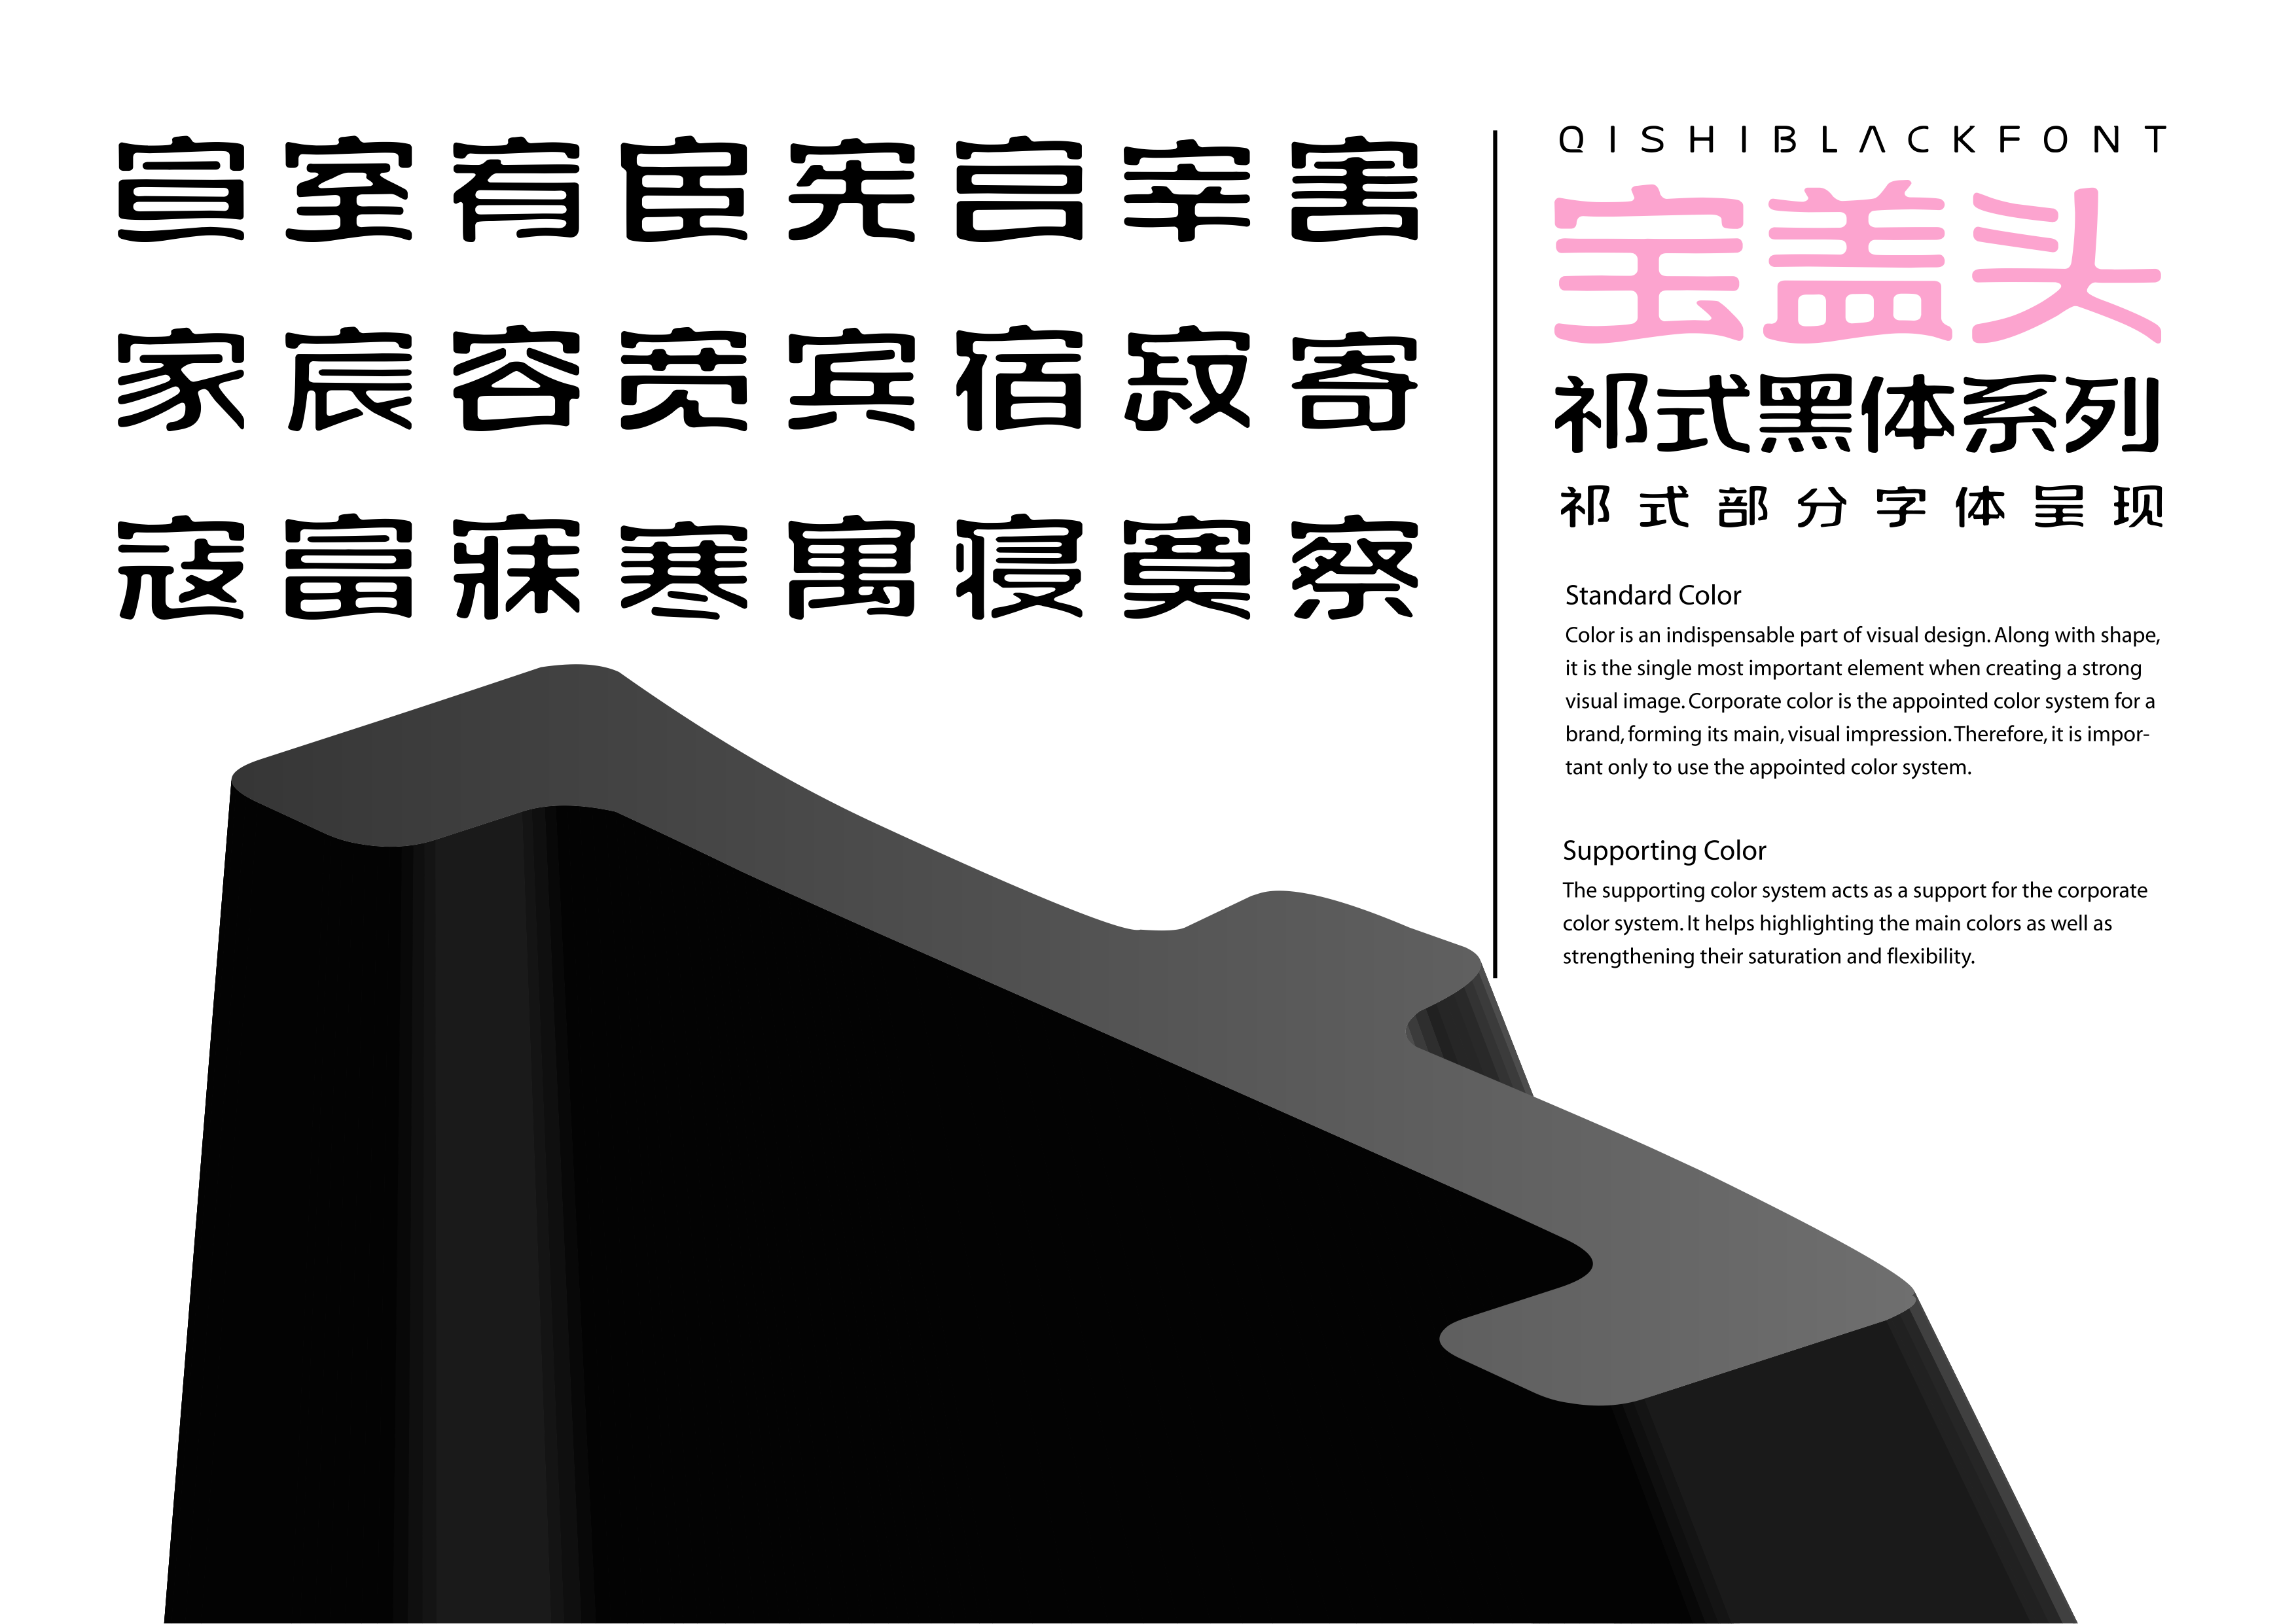 39P Collection of the latest Chinese font design schemes in 2021 #.174